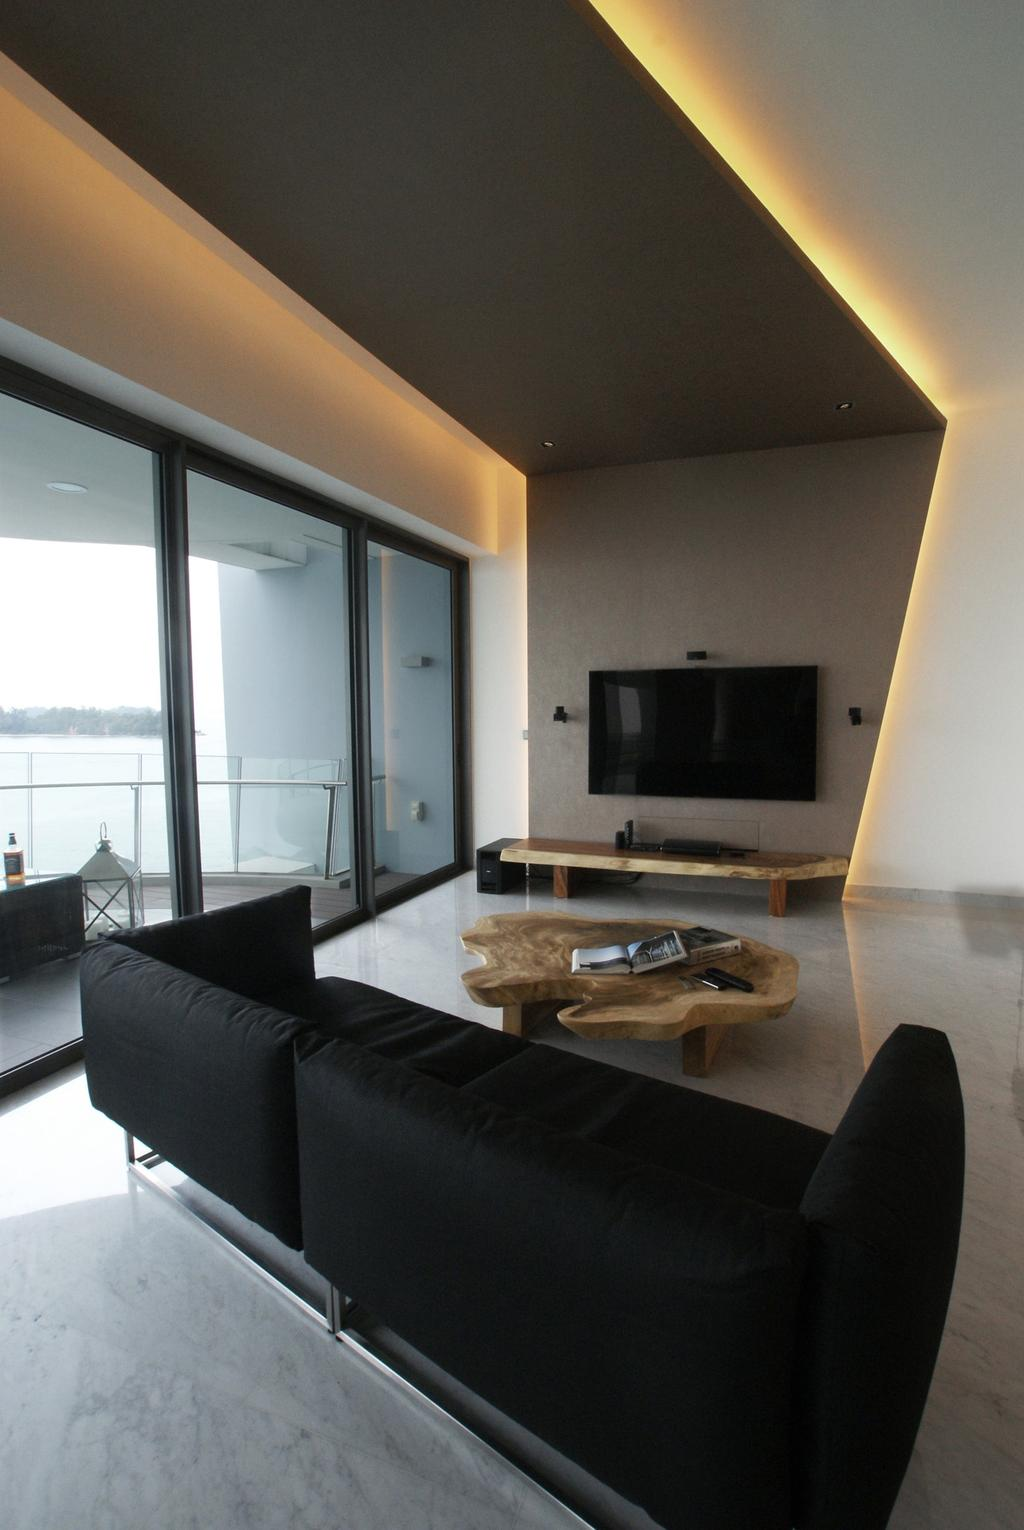 Modern, Condo, Living Room, Seascape, Interior Designer, Metamorph Design, Concealed Lighting, False Ceiling, False Wall, Full Length Windows, Balcony, Seaview, Sofa, Chair, Coffee Table, Table, Tv Console, Wood, Laminate, Wood Laminate, Woodwork, Marble Flooring, Couch, Furniture